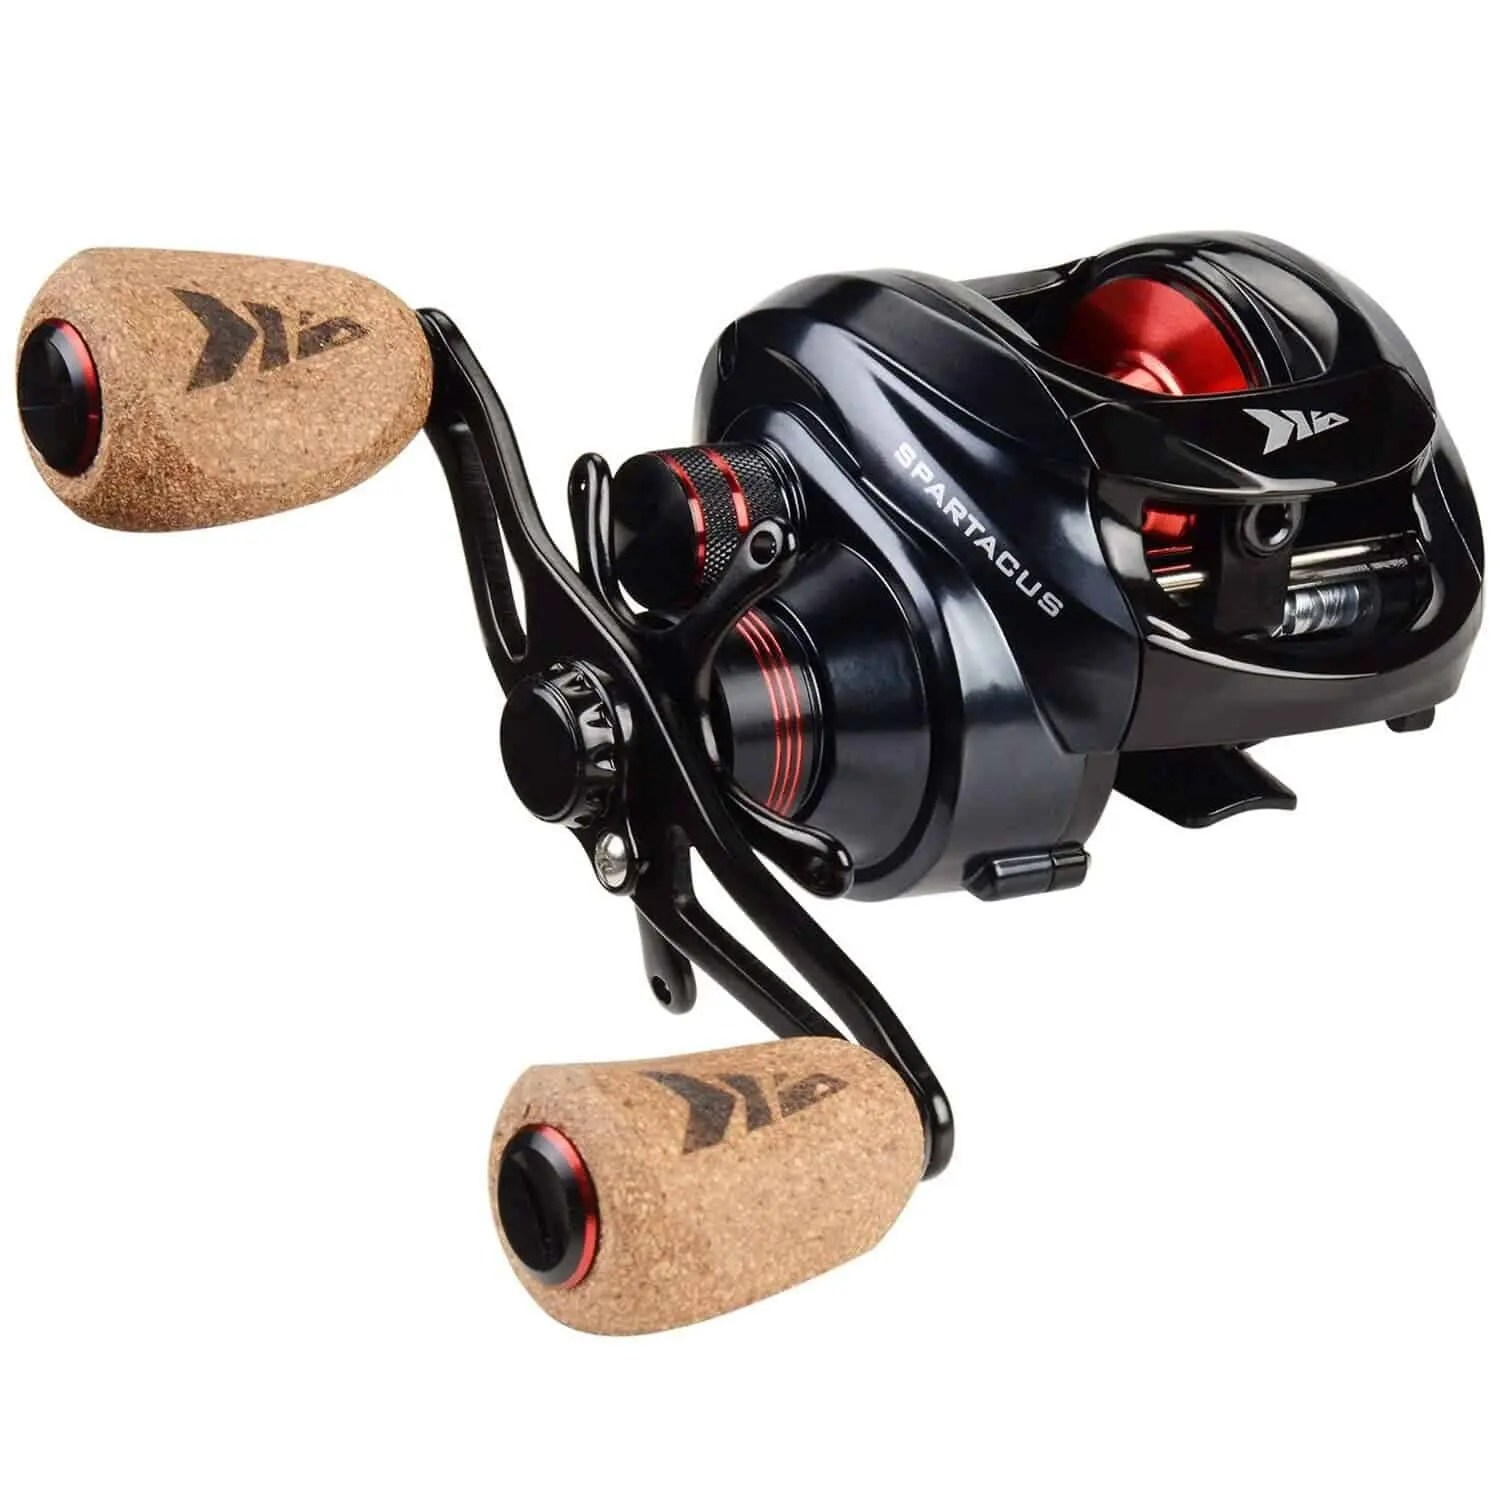 KastKing Spartacus Plus Baitcasting Fishing Reel